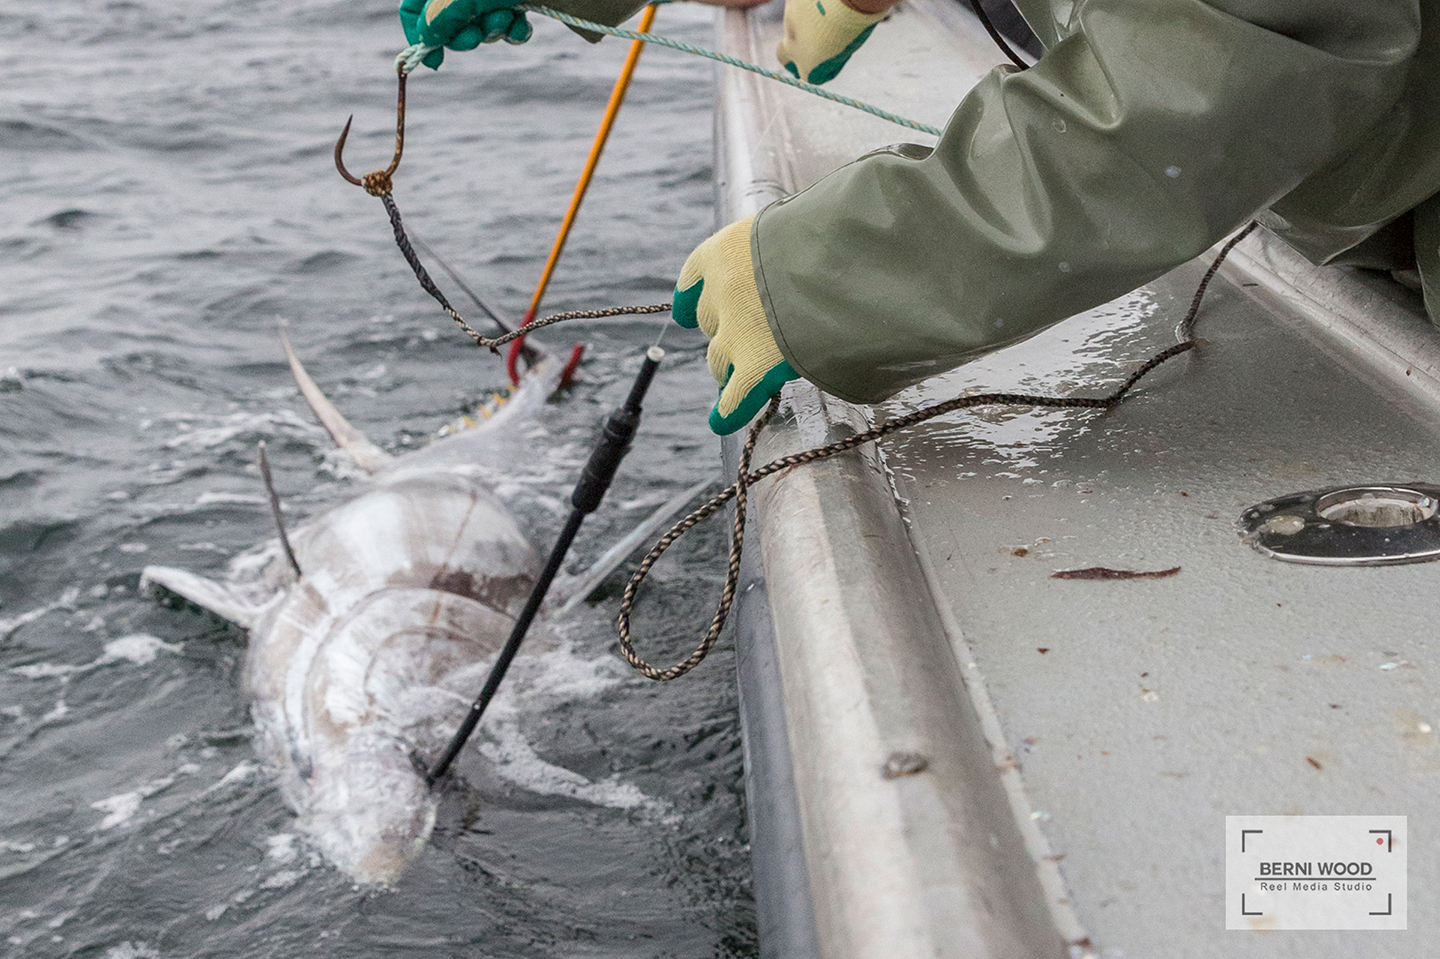 A Bluefin Tuna about to be released at the Canada International Tuna Cup Challenge fishing tournament